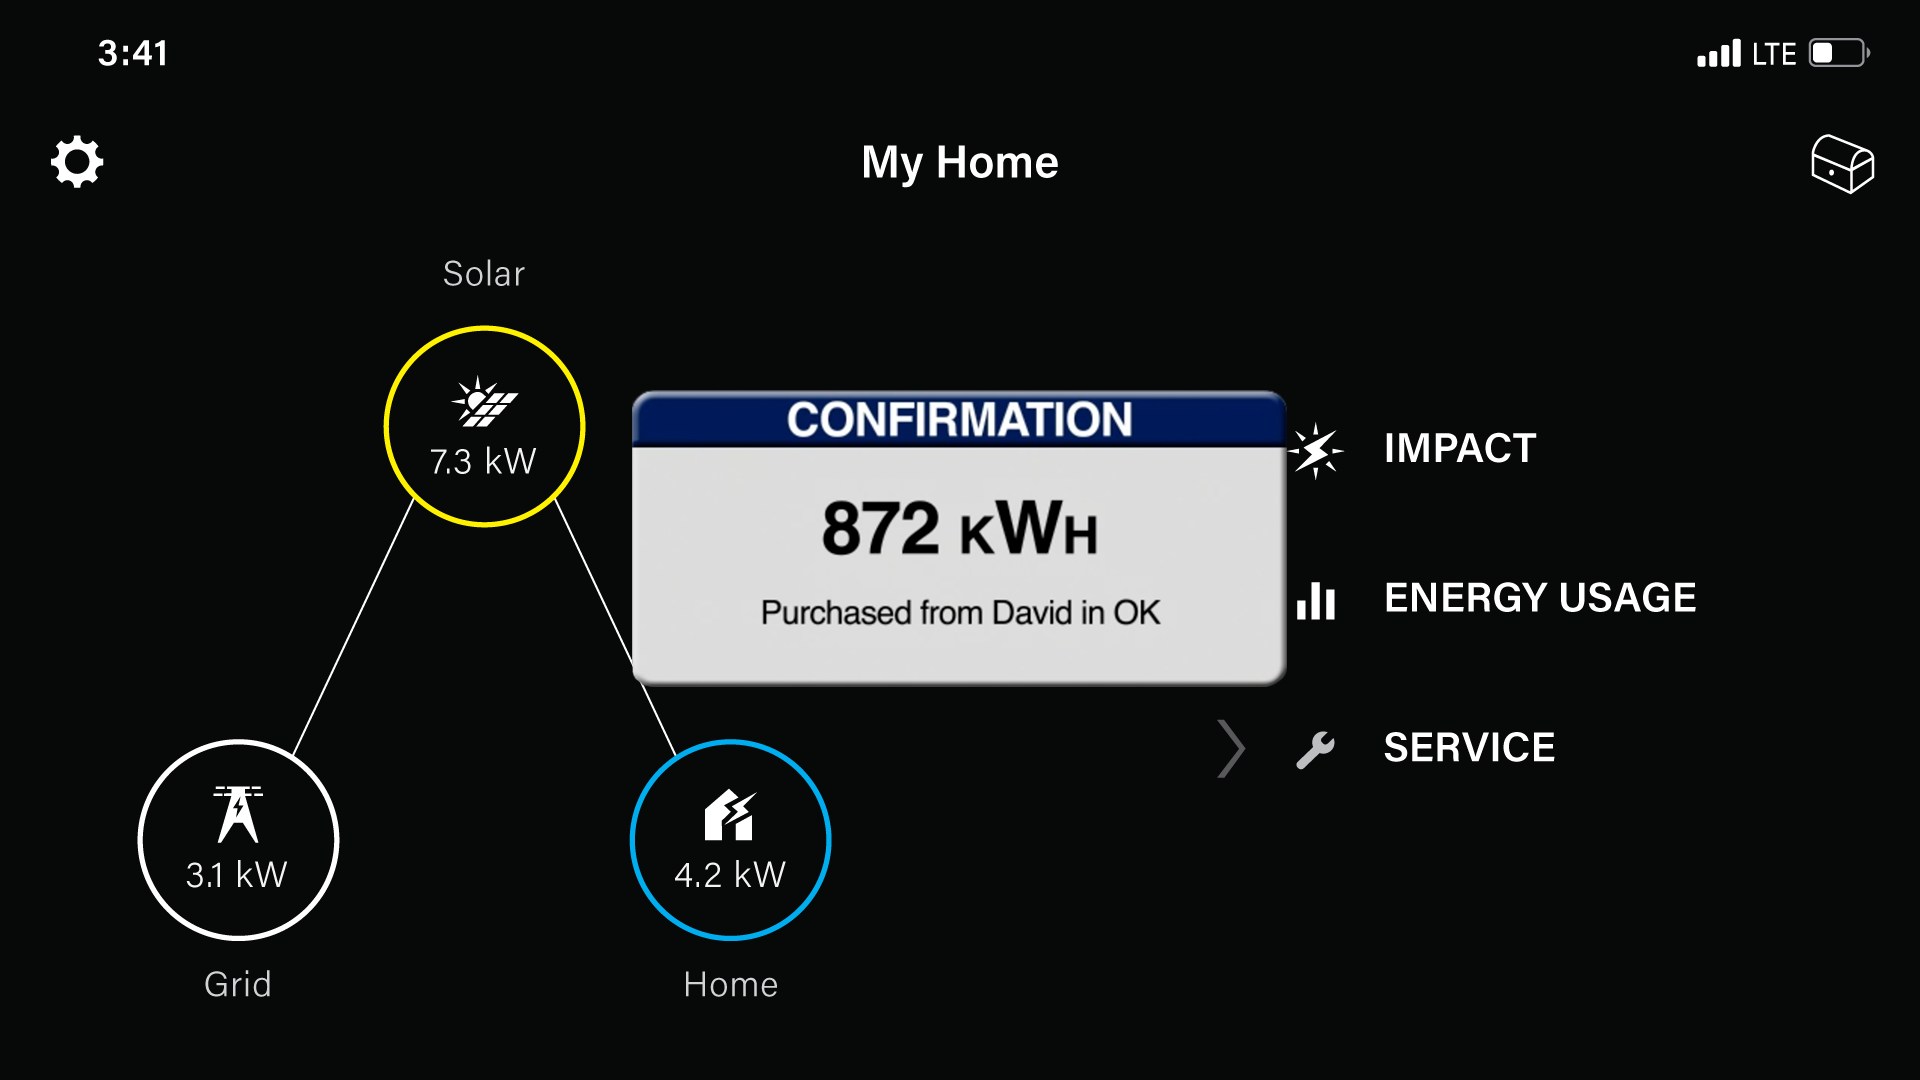 iphone10-my-home-energy-screen-image-confirmation